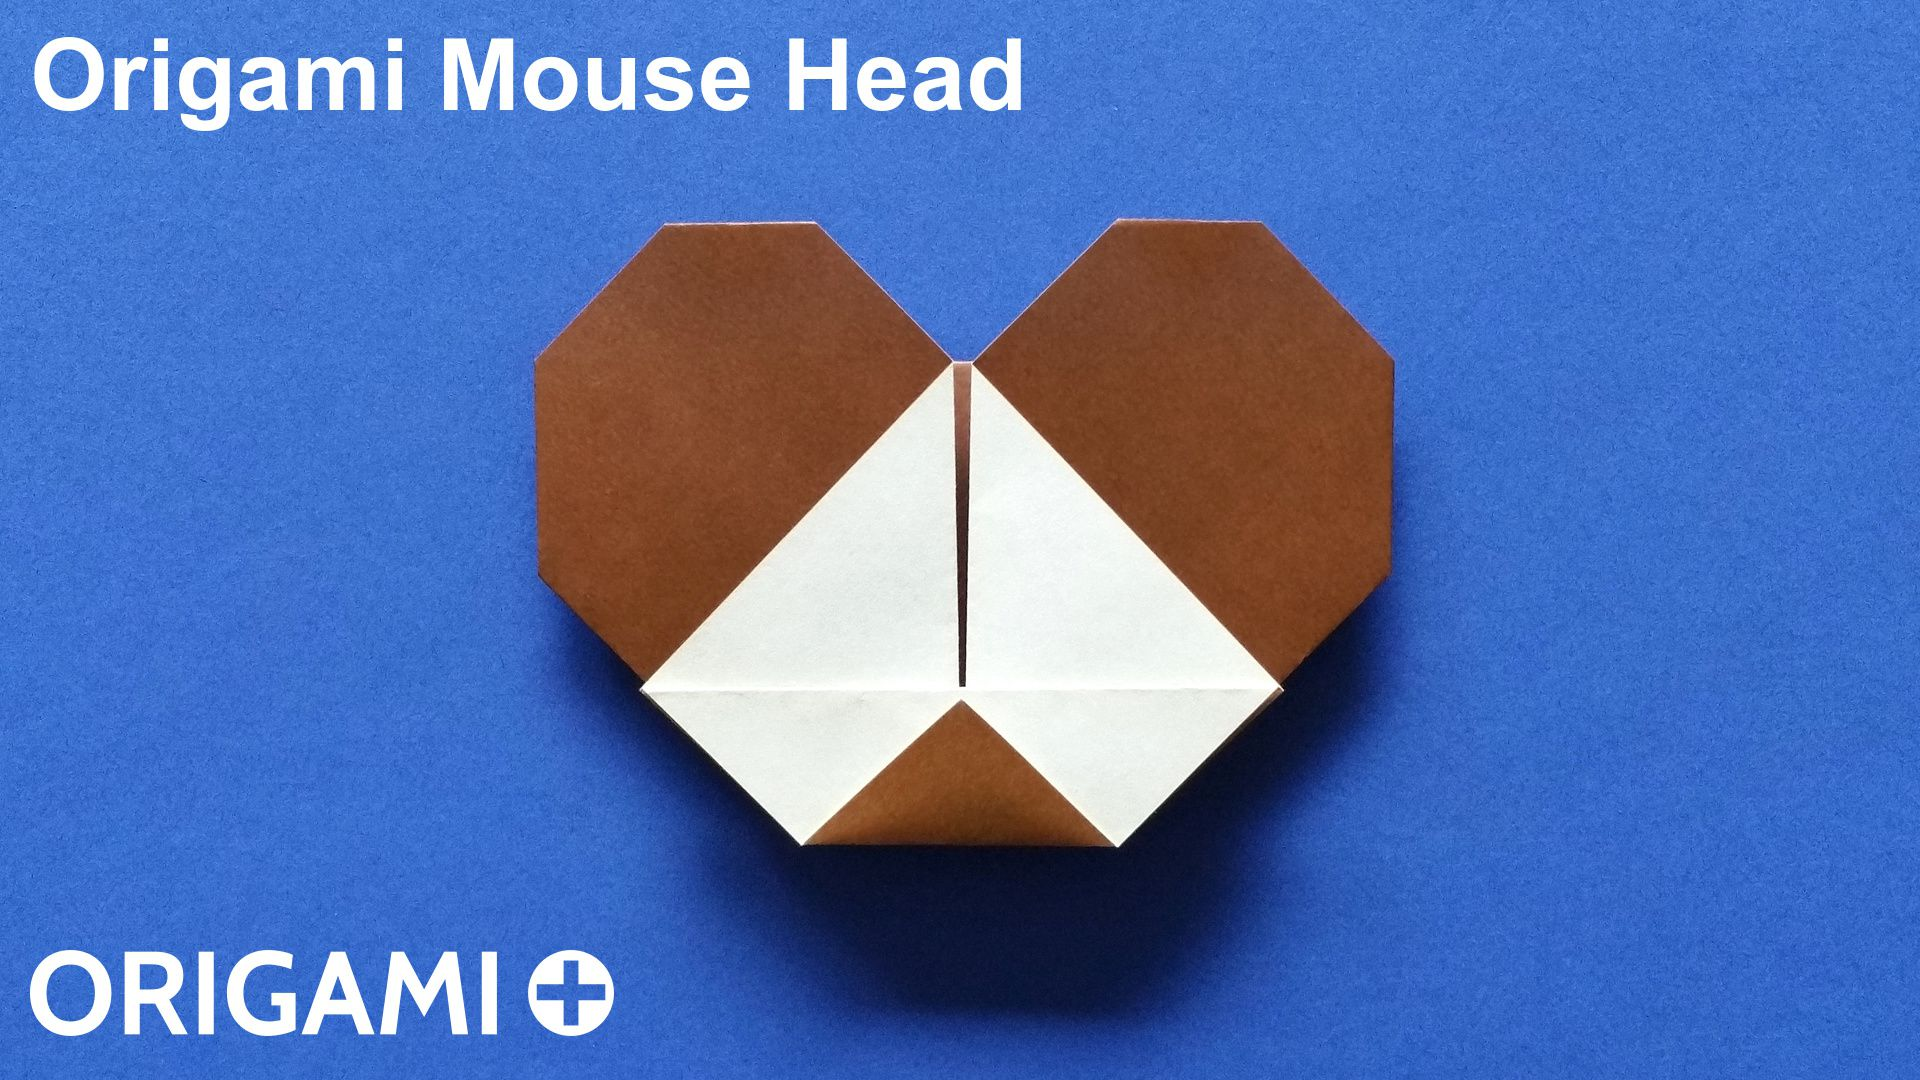 Origami Mouse Head on